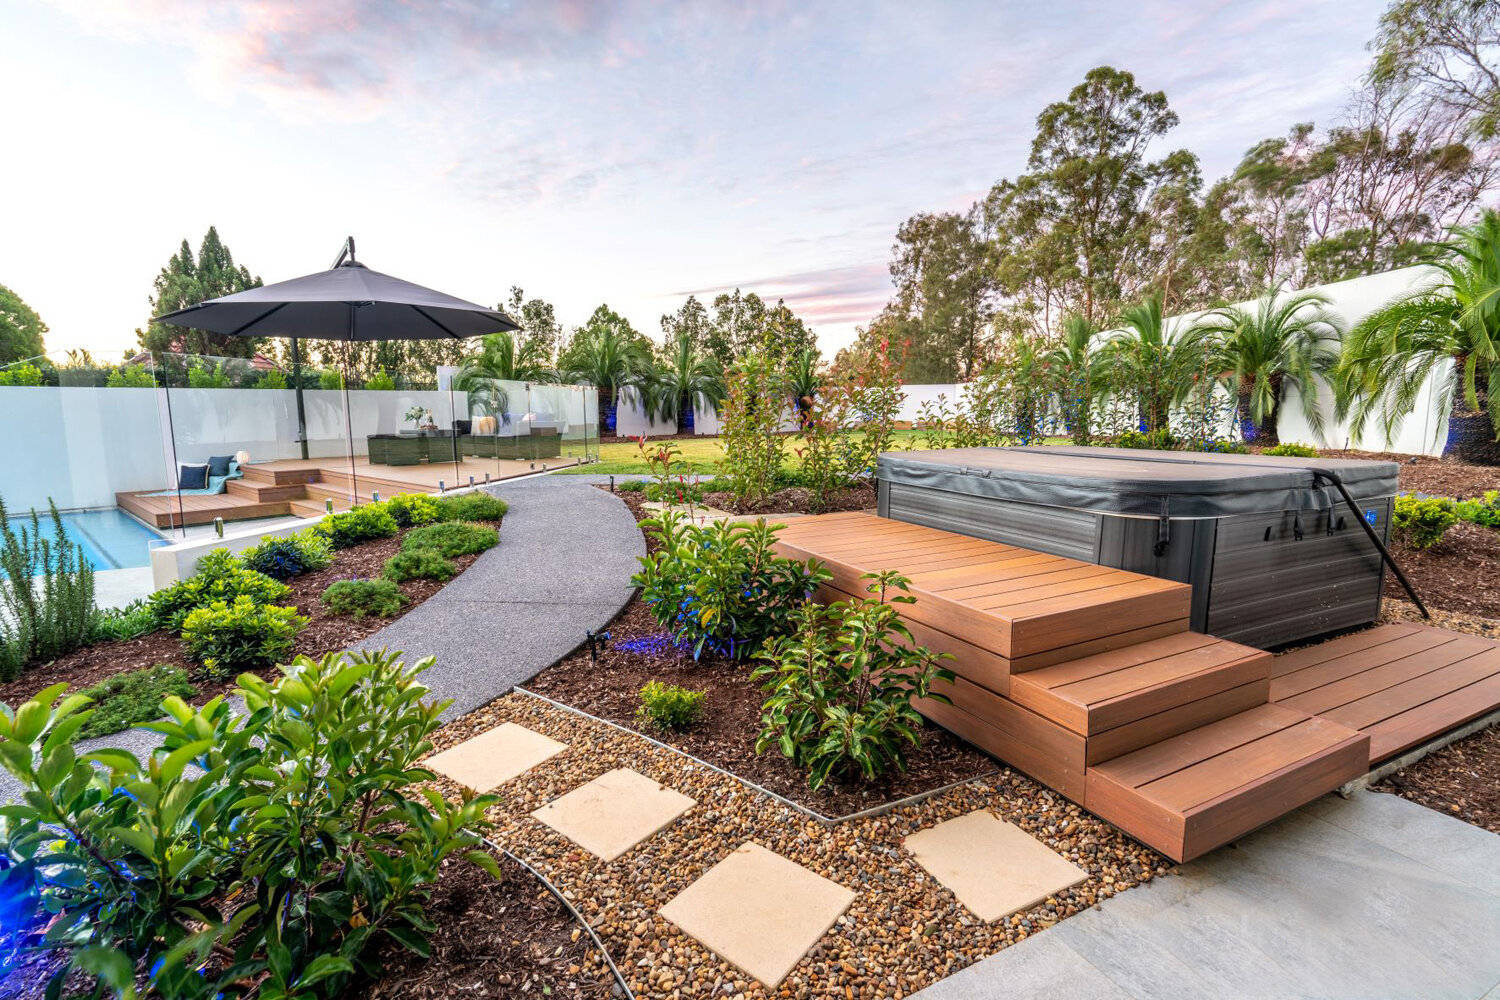 Futurewood's eco-friendly composite timber decking choices